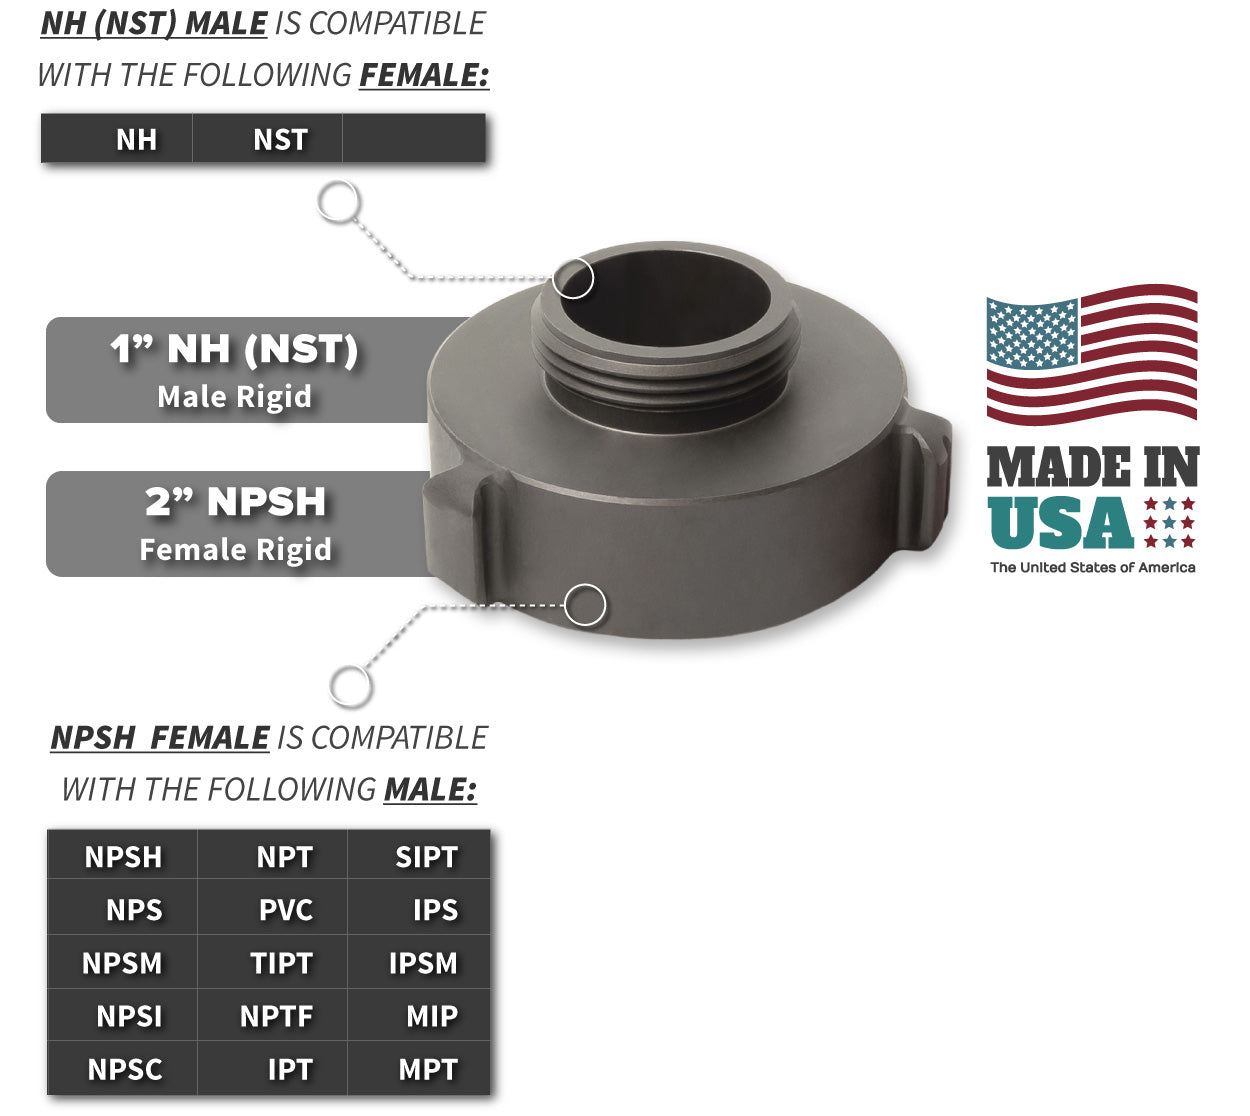 2 Inch NPSH Female x 1 Inch NH-NST Male Compatibility Thread Chart